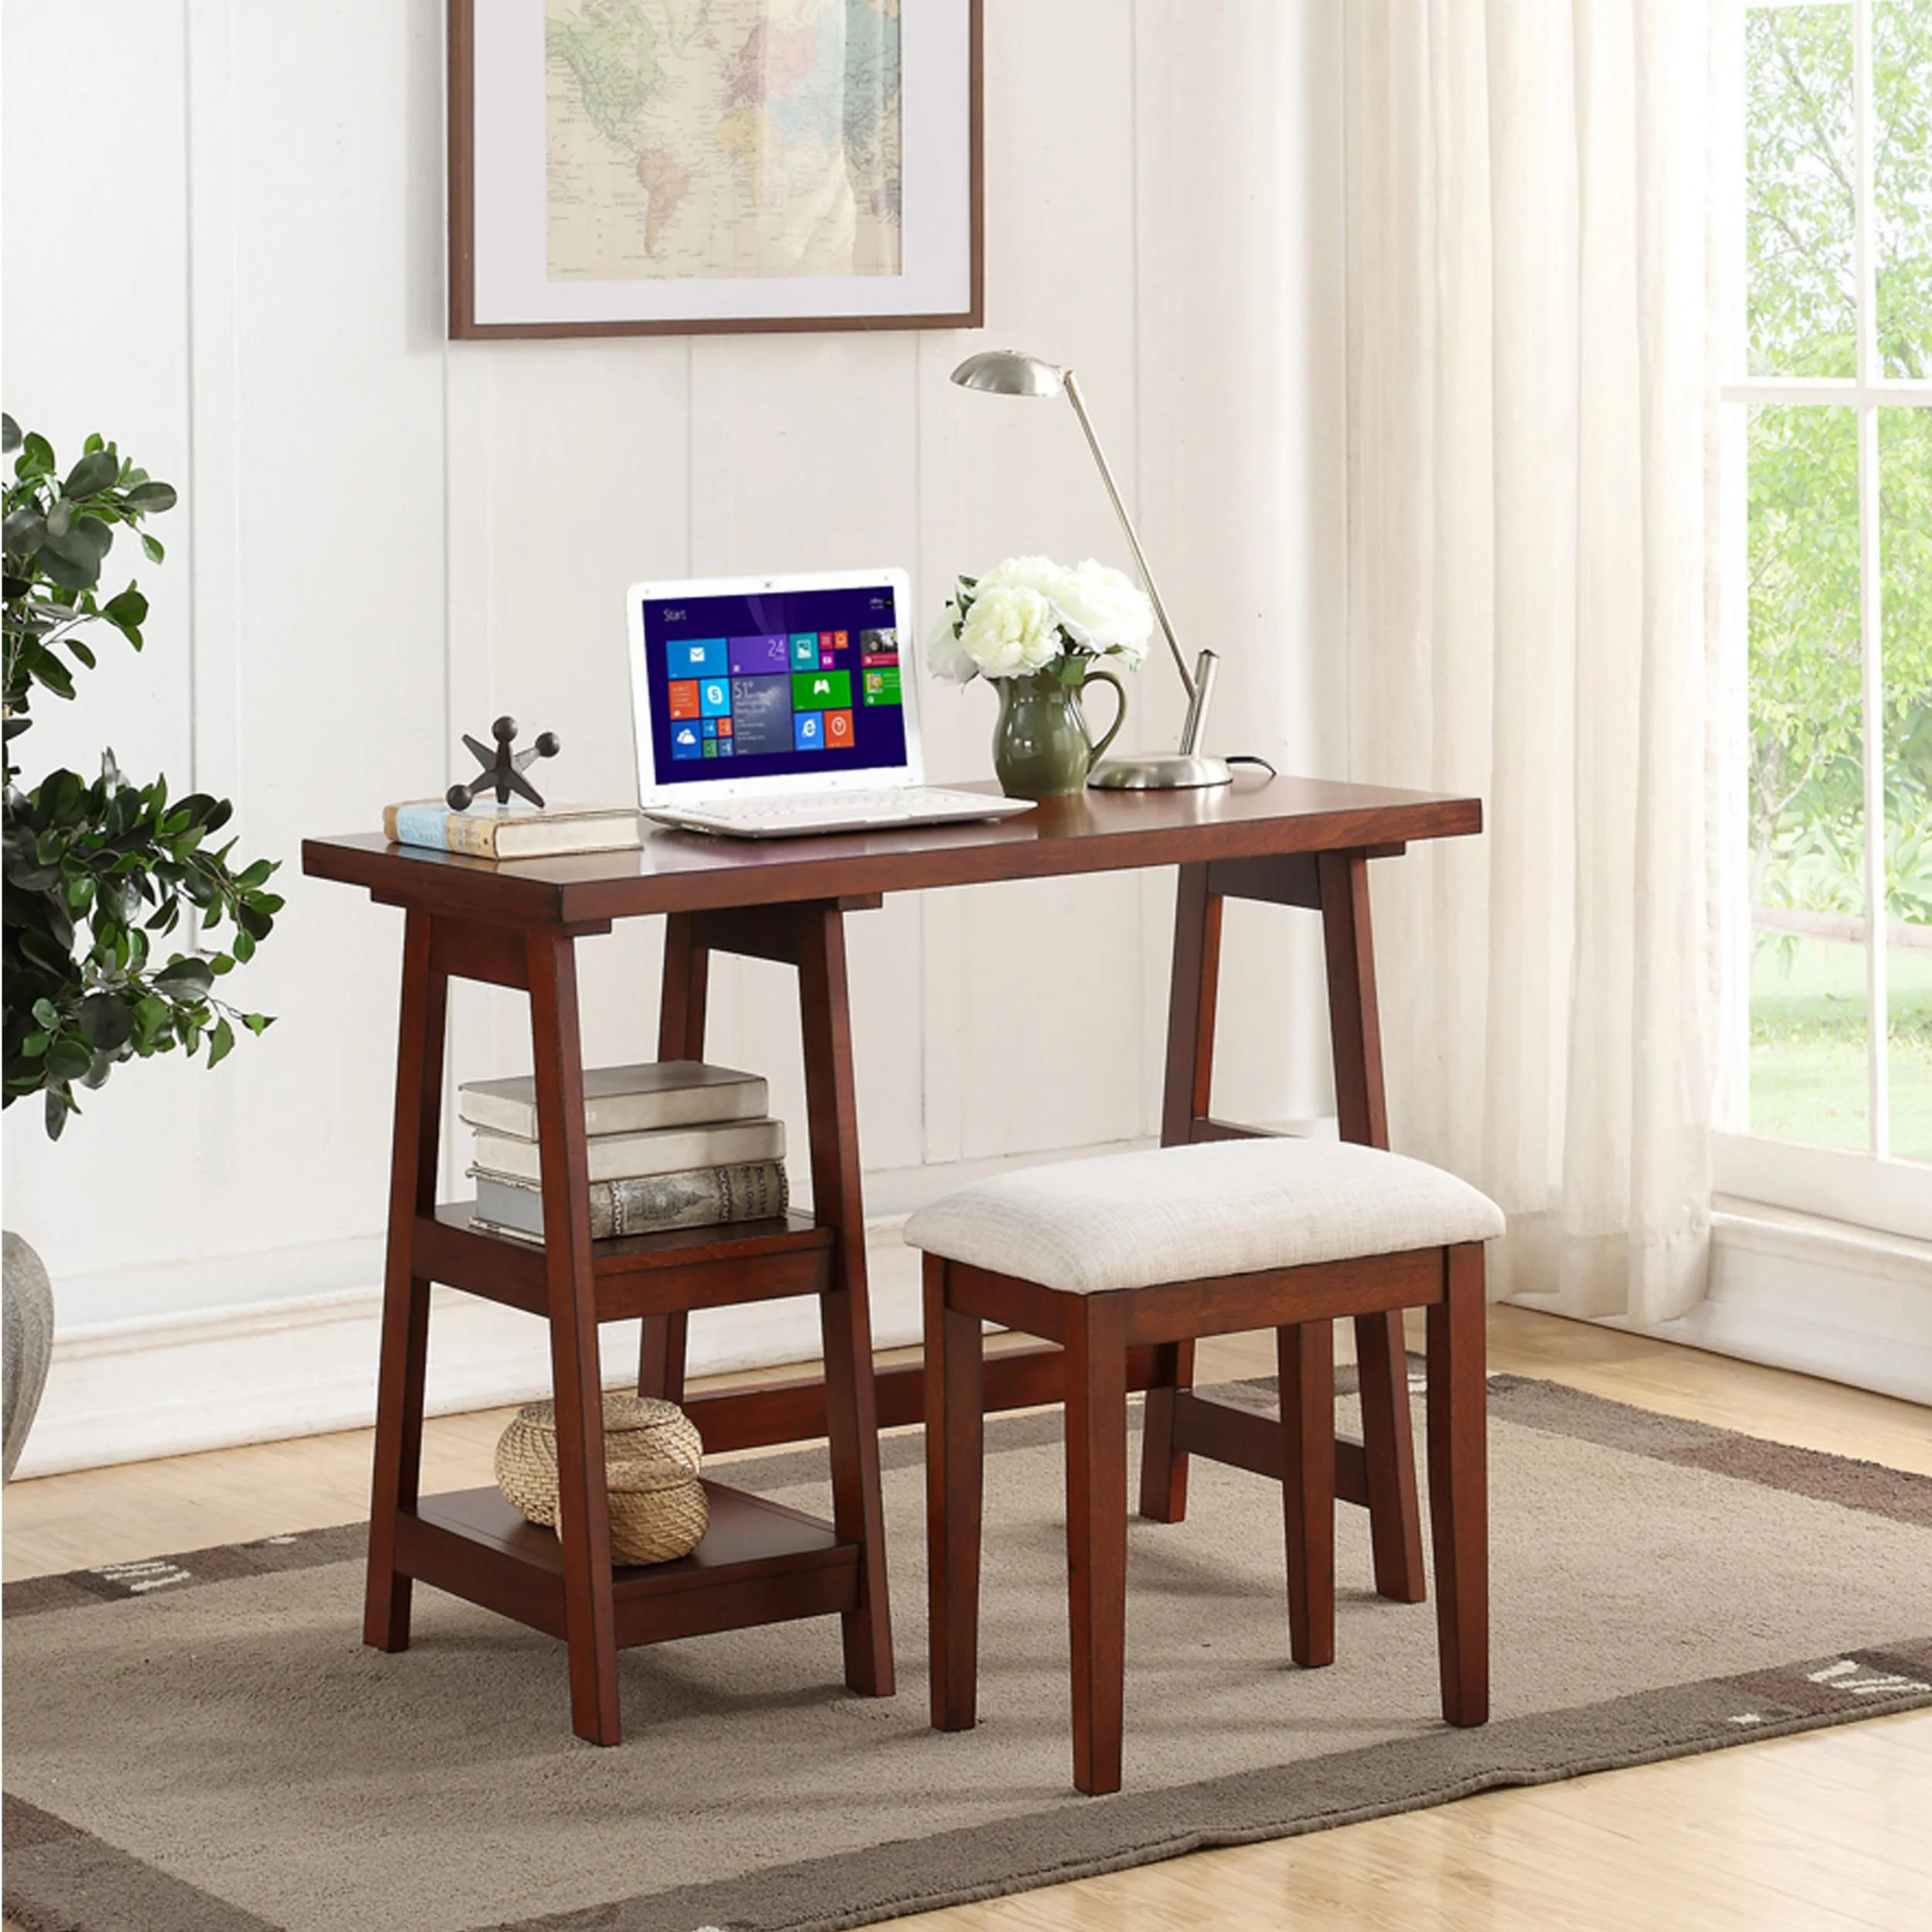 Desk And Chair Set Norviel Wooden Writing Desk And Chair Set